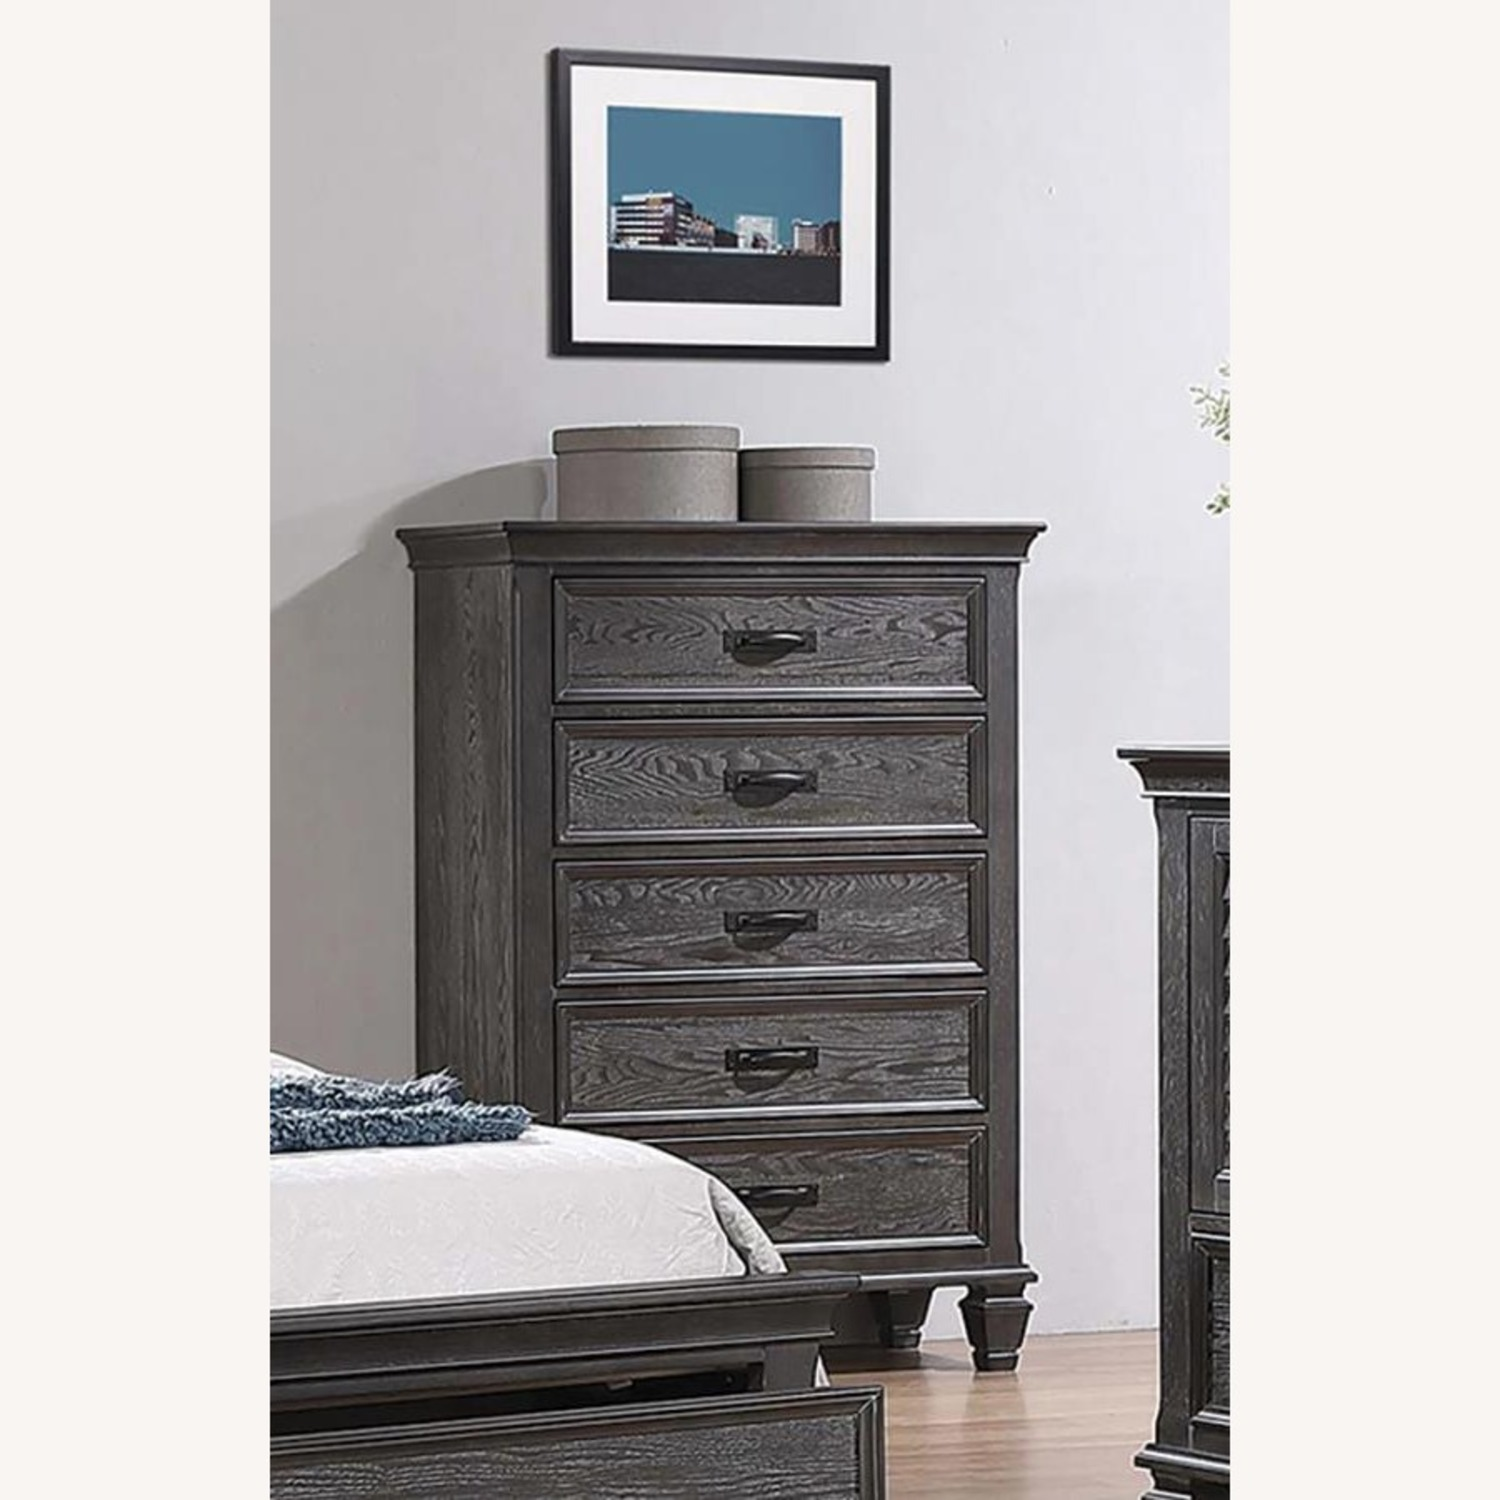 5-Drawer Chest In Weathered Sage Finish - image-1